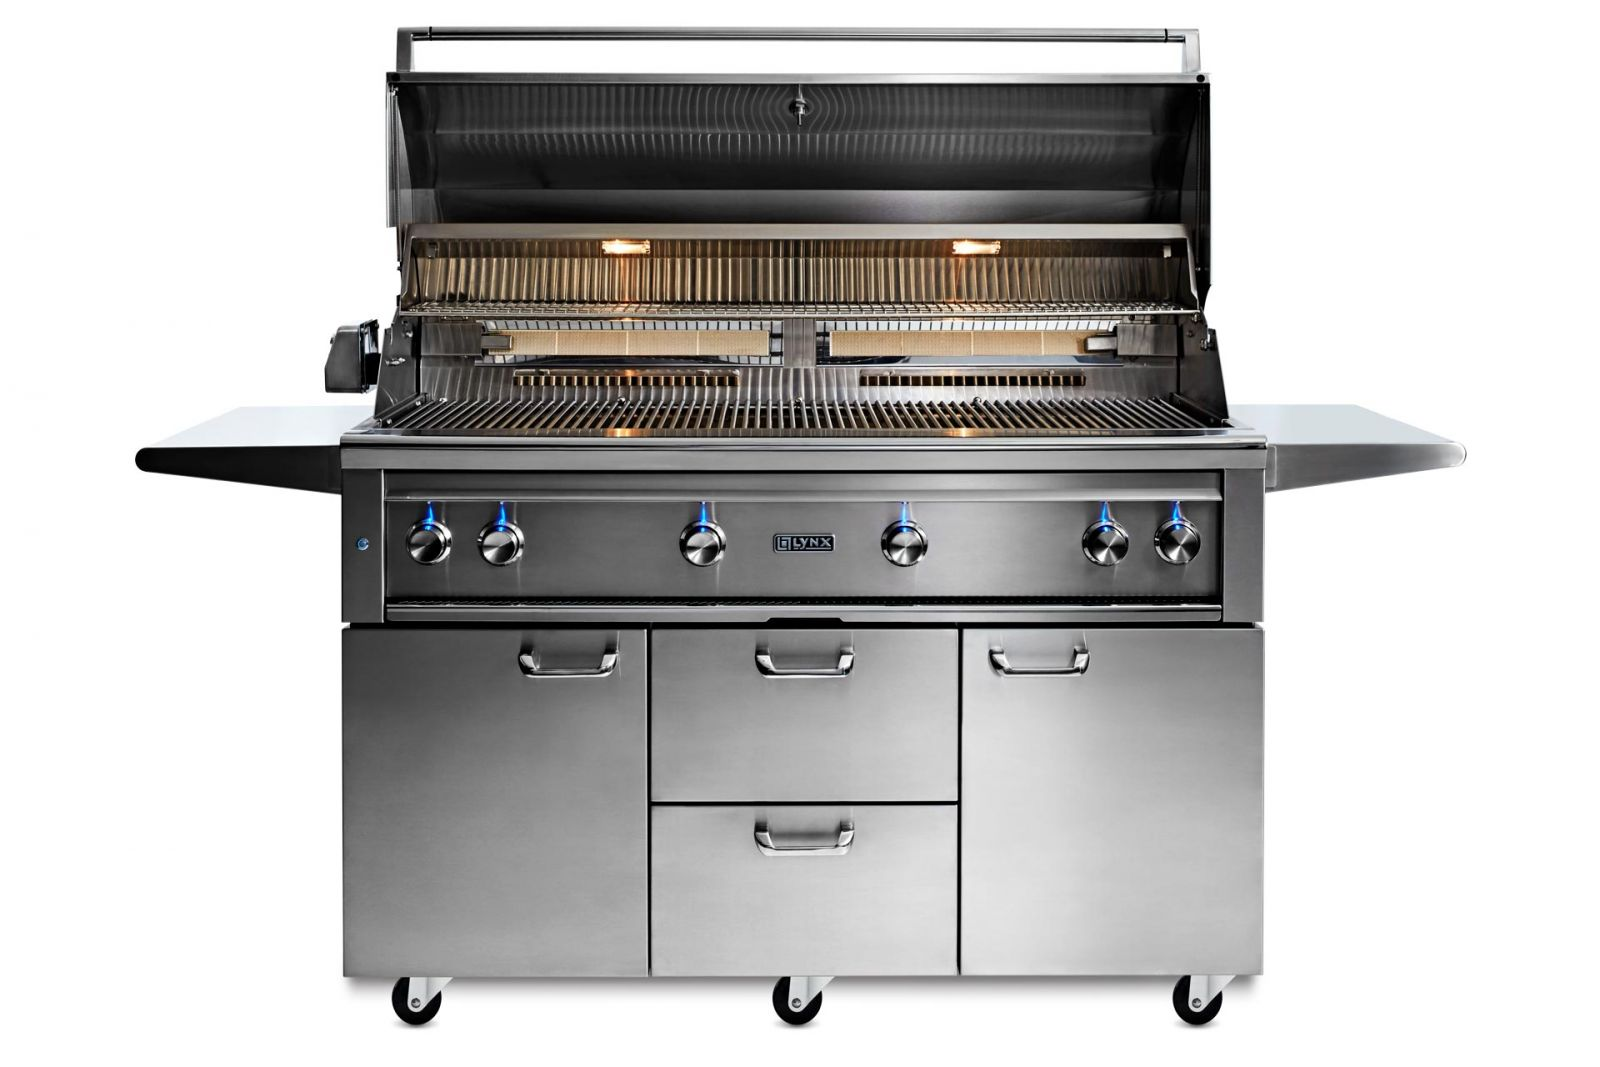 """54"""" Professional Freestanding grill with 1 trident infrared burner and 3 ceramic burners and rotisserie (L54TRF)"""